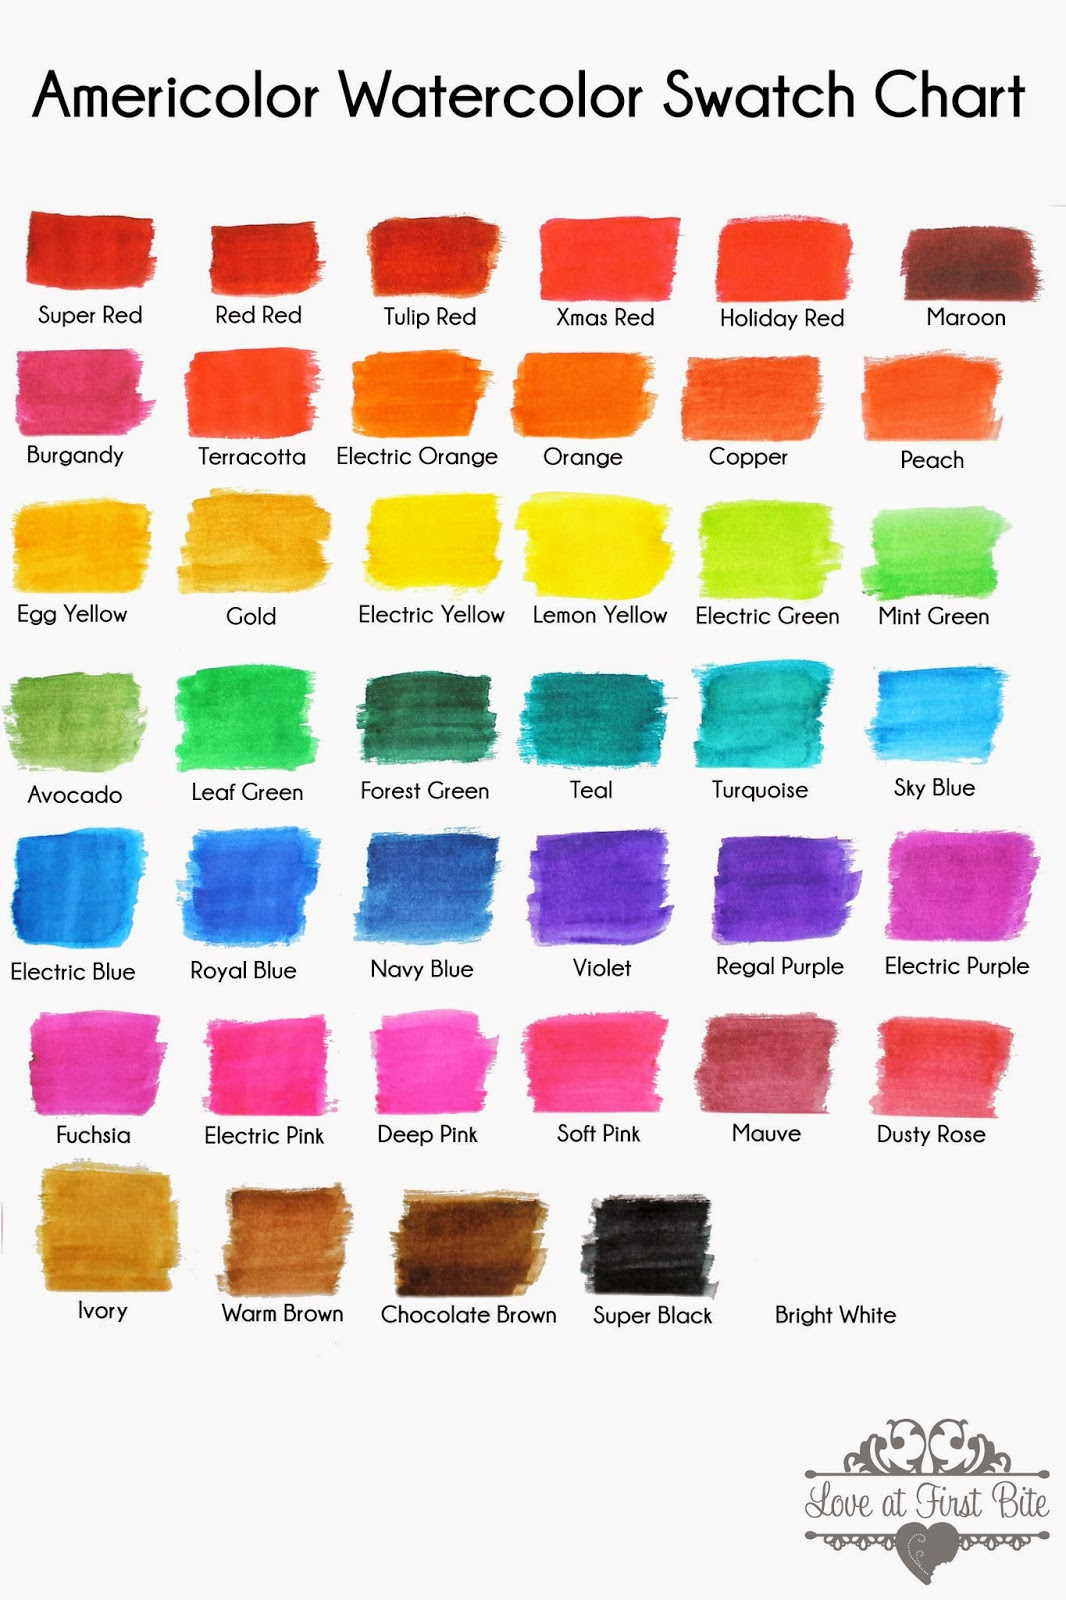 Awhile Back I Mentioned That Sometimes Our Secondary Colors Look Vibrant And They Muddy The Secret Mystery To Mixing Perfect Color Is